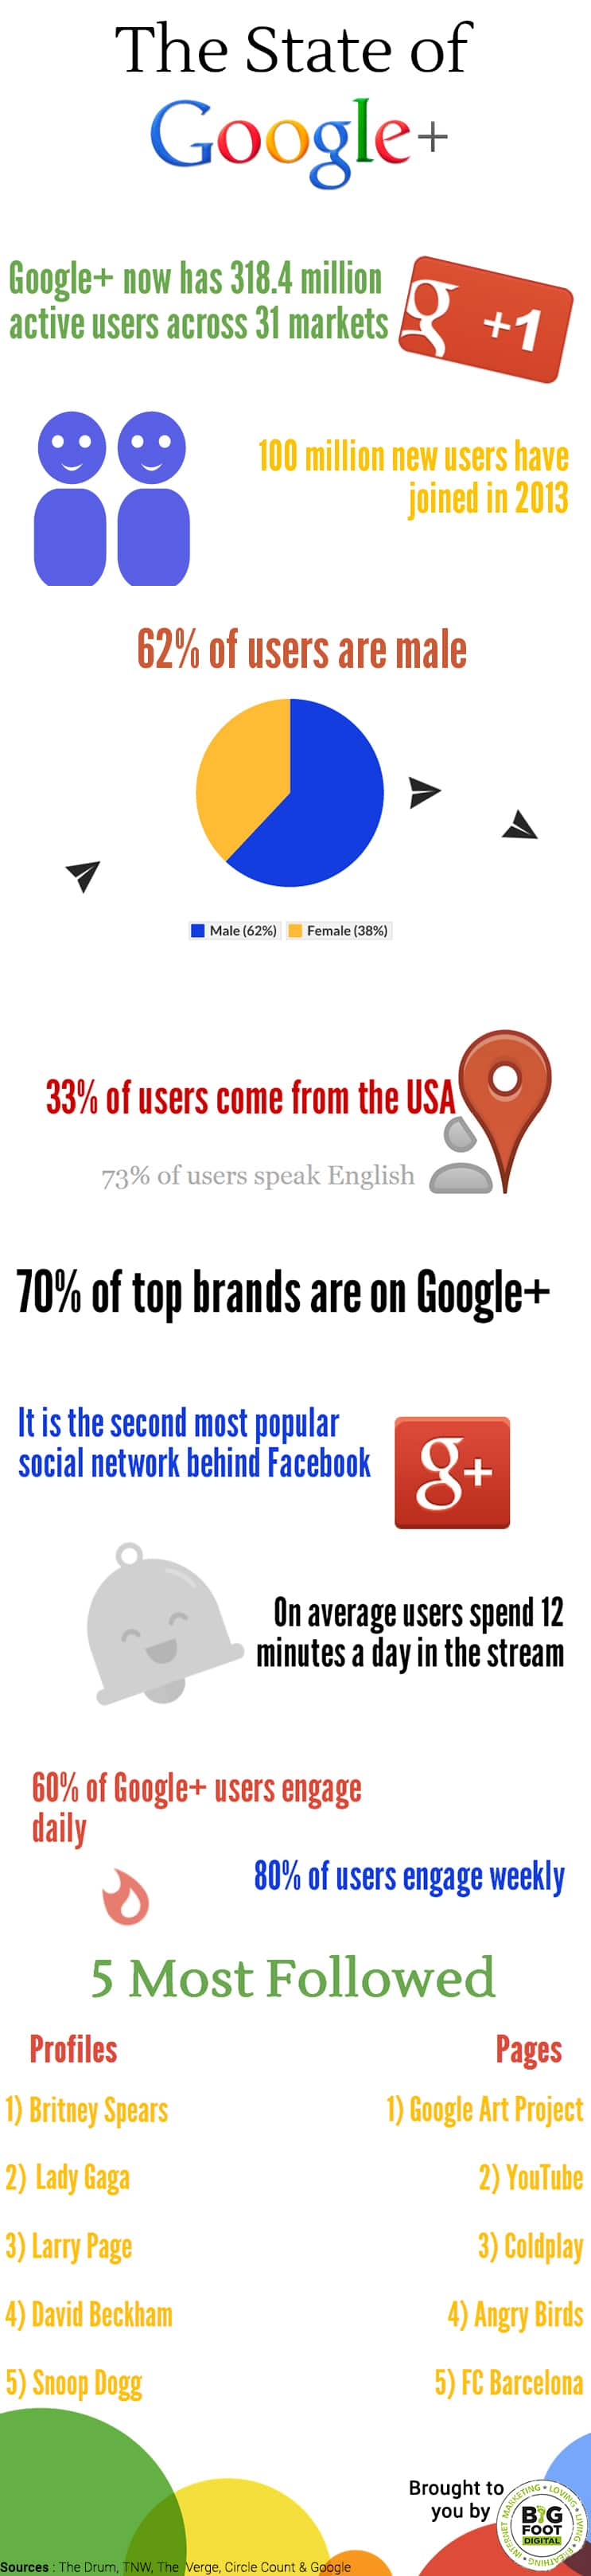 20+ Most Amazing Facts About Google Plus That You Might Not Be Knowing